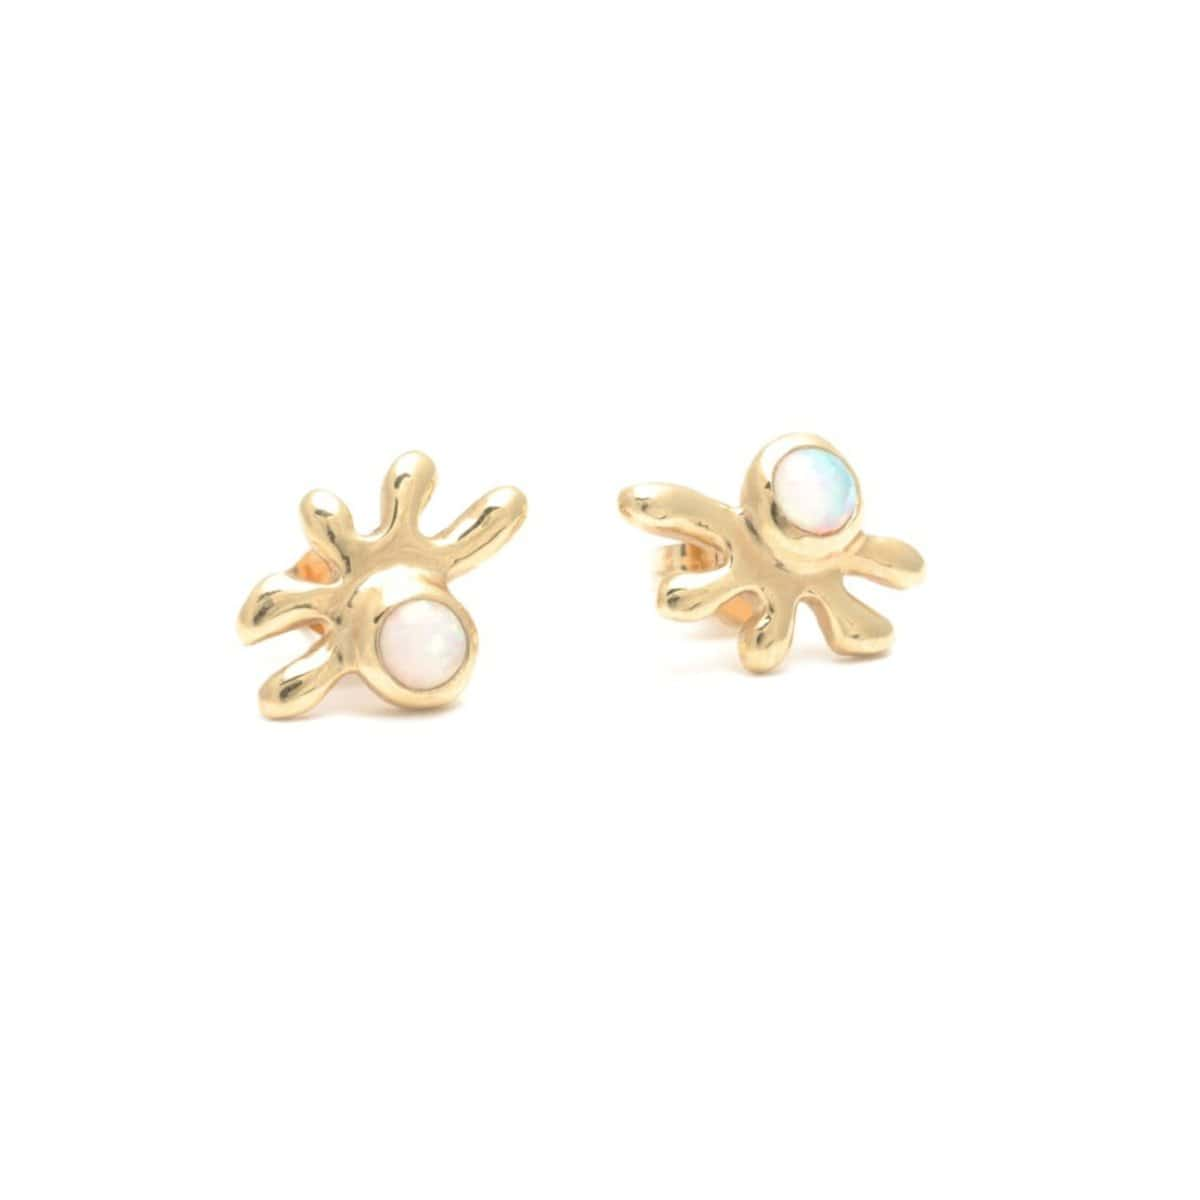 Opal Organic Shape 14k Yellow Gold Stud Earrings